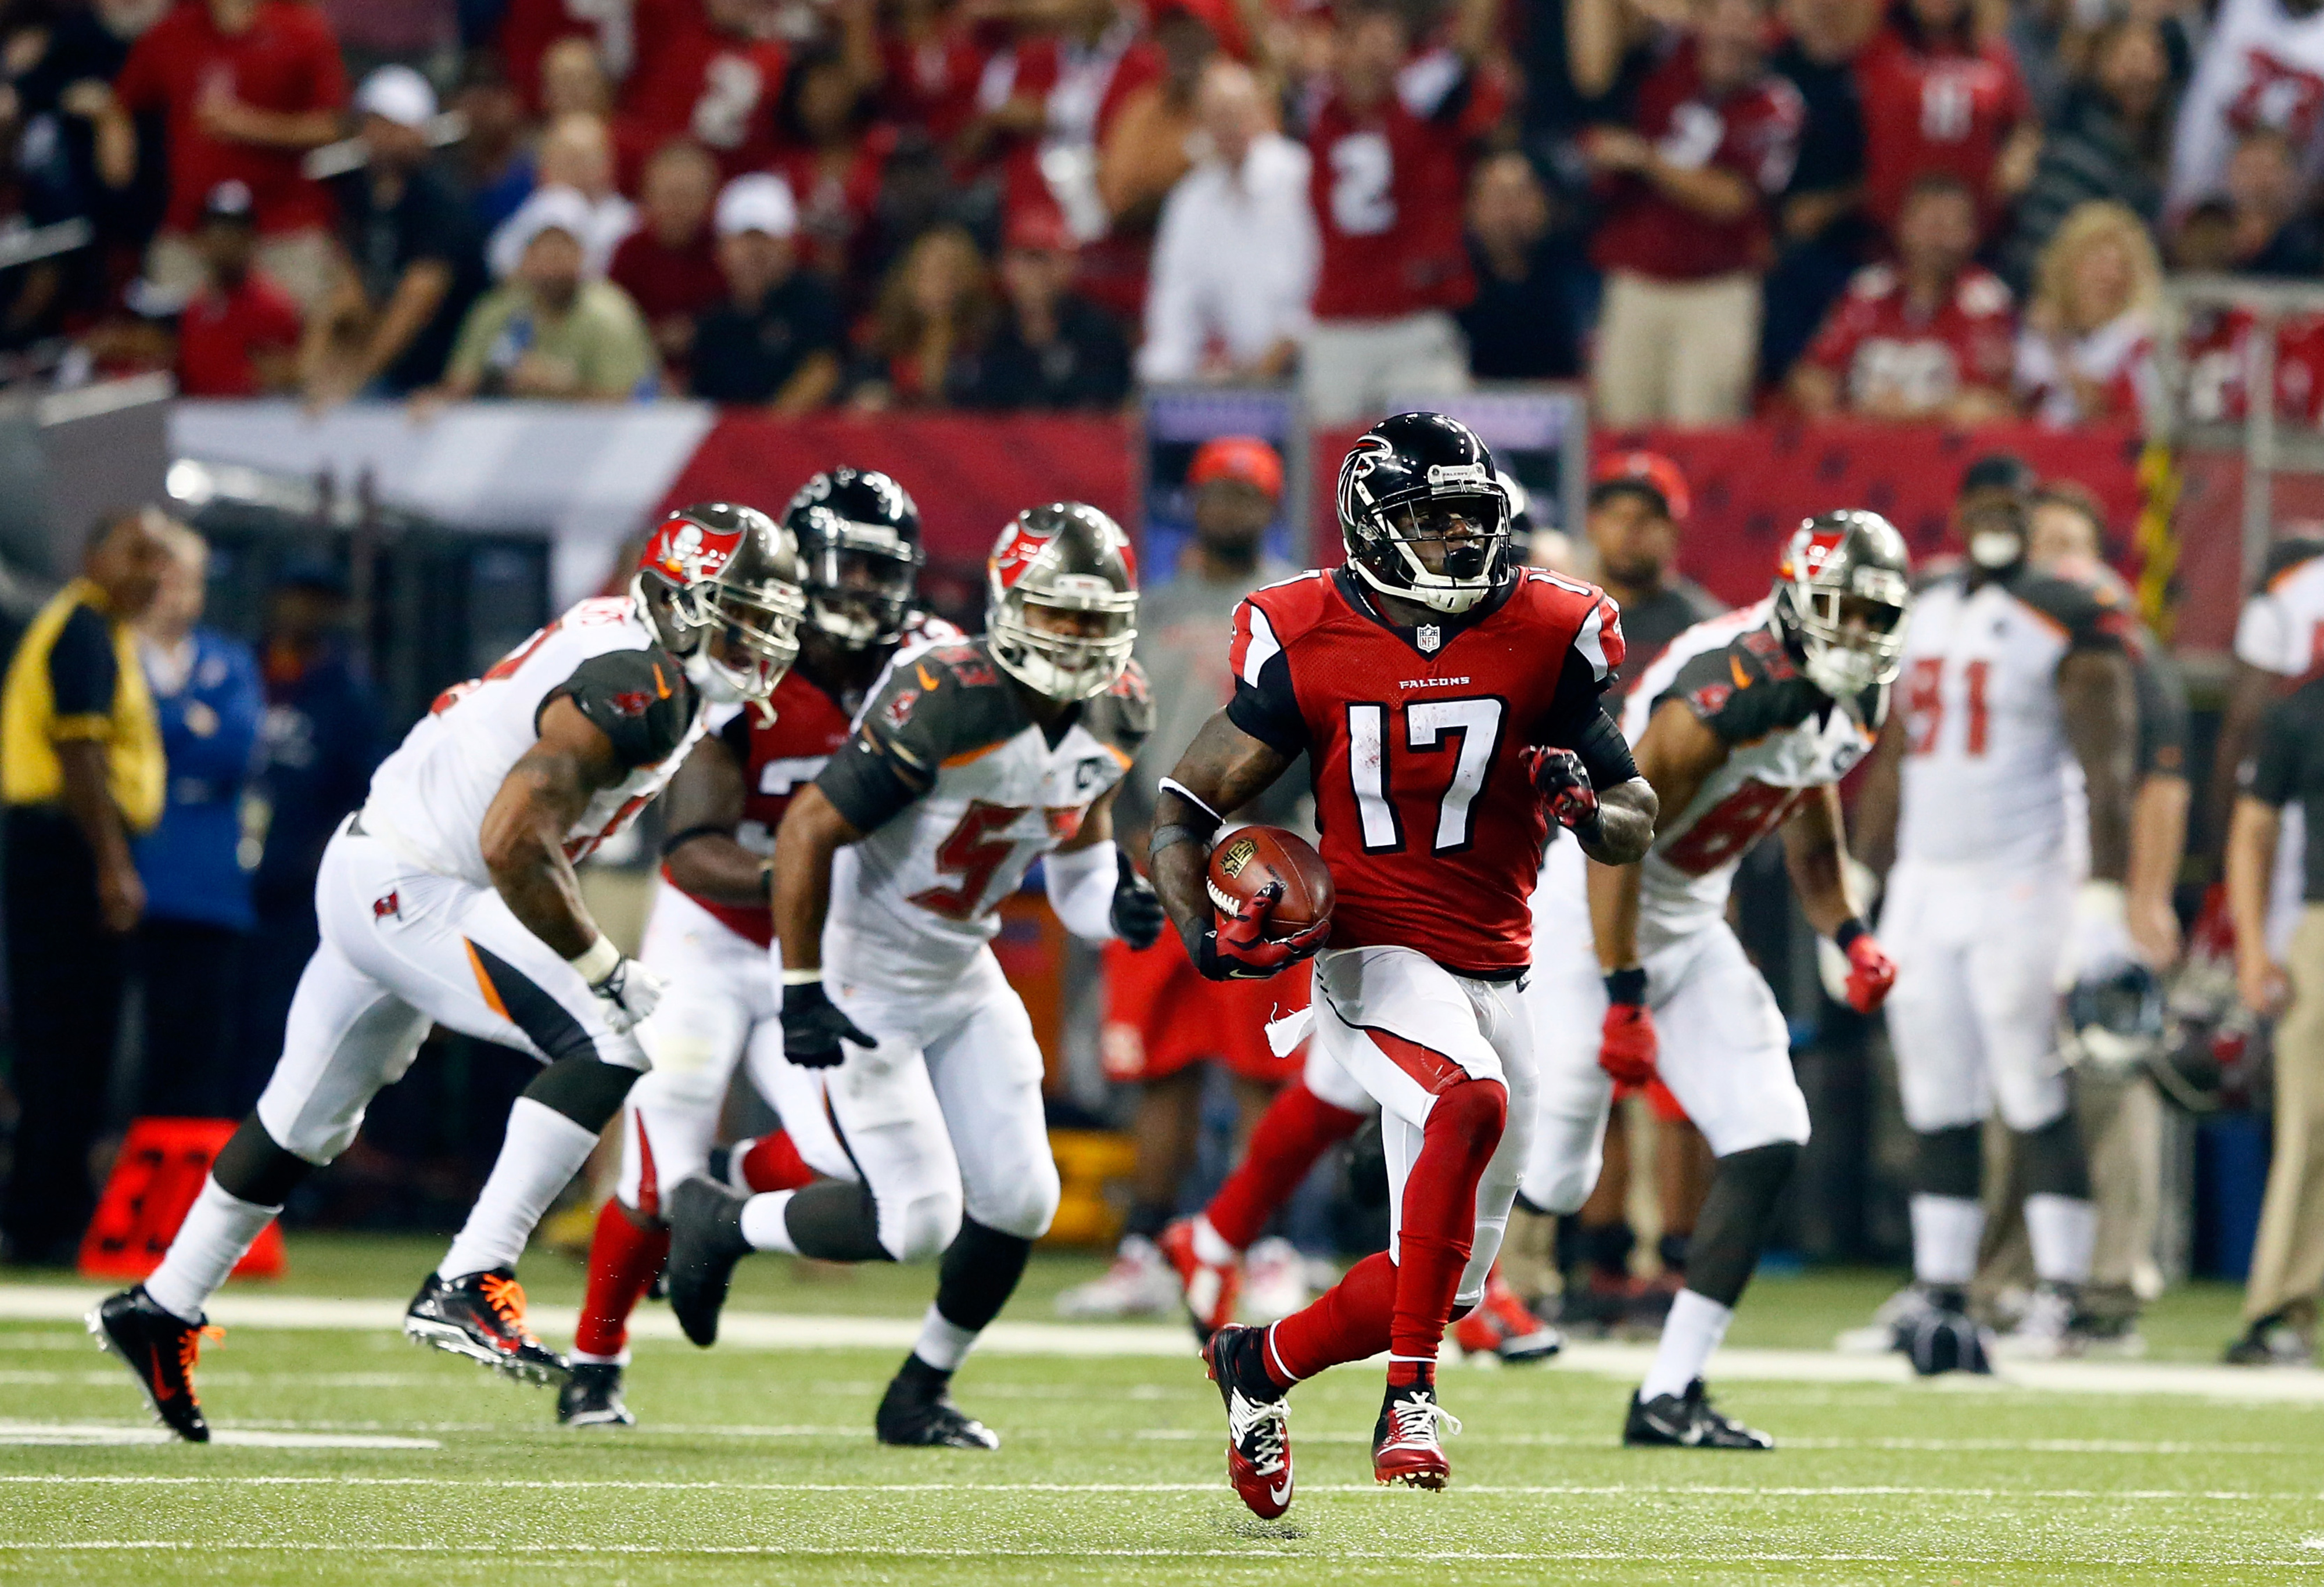 This sight, Devin Hester returning a kick for a touchdown, is one the Giants don't want to see Sunday